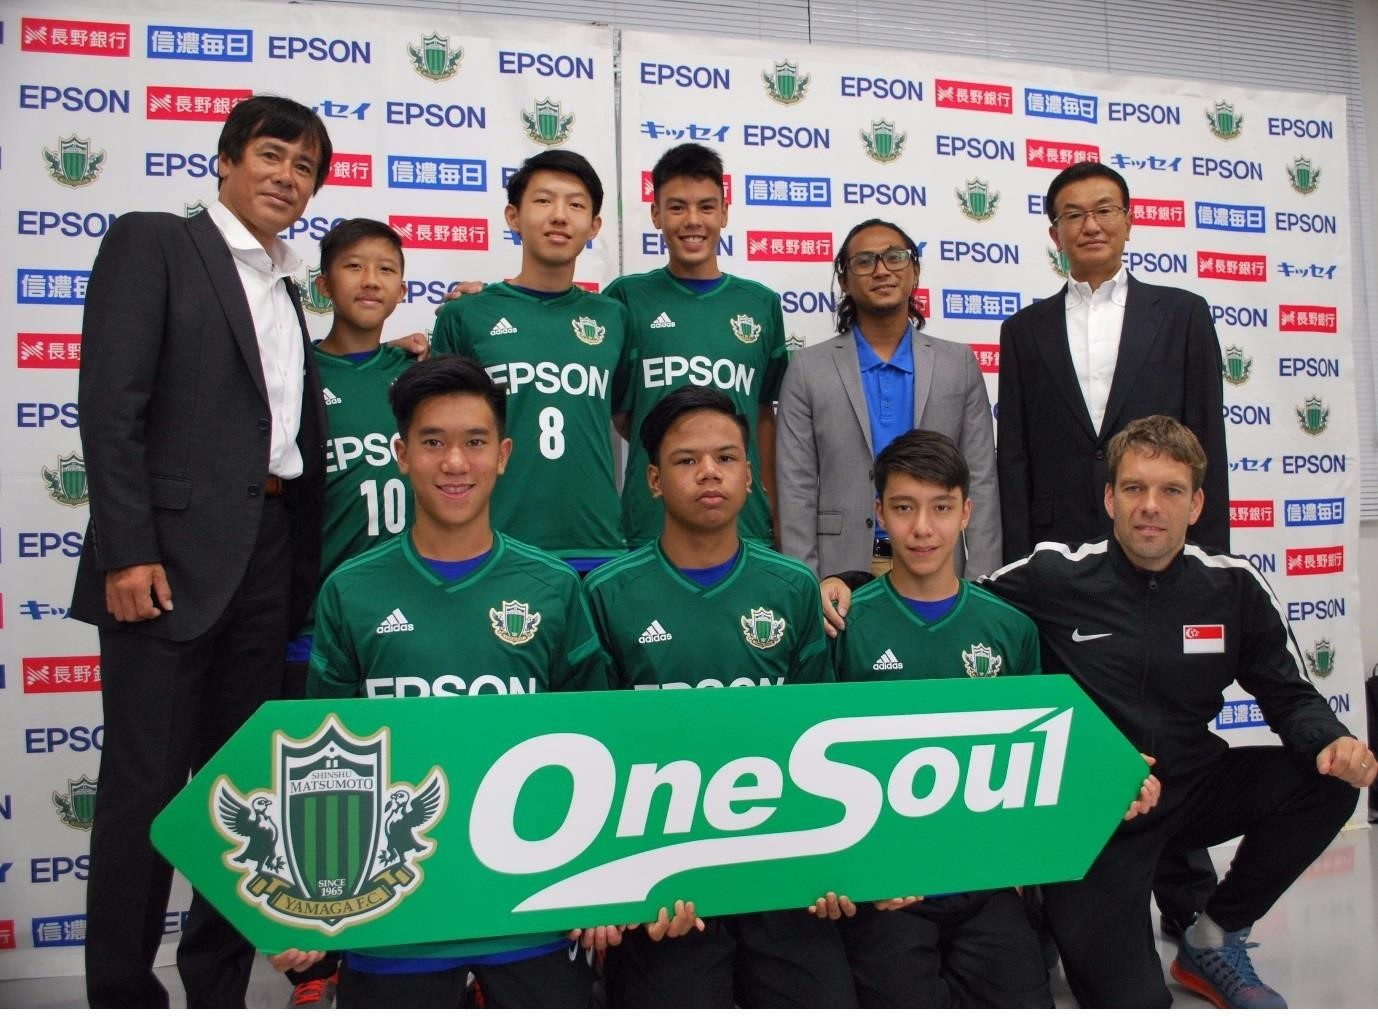 Top row (L-R):  Mr Takeshi Yamazaki (Youth Academy Director, Matsumoto Yamaga FC), National  Football Academy's U-15 youth footballers Elijah Lim and Ashley Yong, U-14 youth footballer  Vasileios Chua, Mr Nadzri Osman (Executive, National Youth Teams, Football Association of  Singapore) and Mr Toshio Hanaoka (General Manager, Public Relations & Investor Relations, Seiko  Epson Corporation)     Bottom row (L-R): National Football Academy's U-14 youth footballer Marc Ryan Tan, U-15 youth footballers Muhammad Nur Adam Bin Abdullah and Christian Chiang Moroni, and Mr Rob Servais (Head Coach of the Singapore U-15 squad, National Football Academy, Football Association of Singapore)